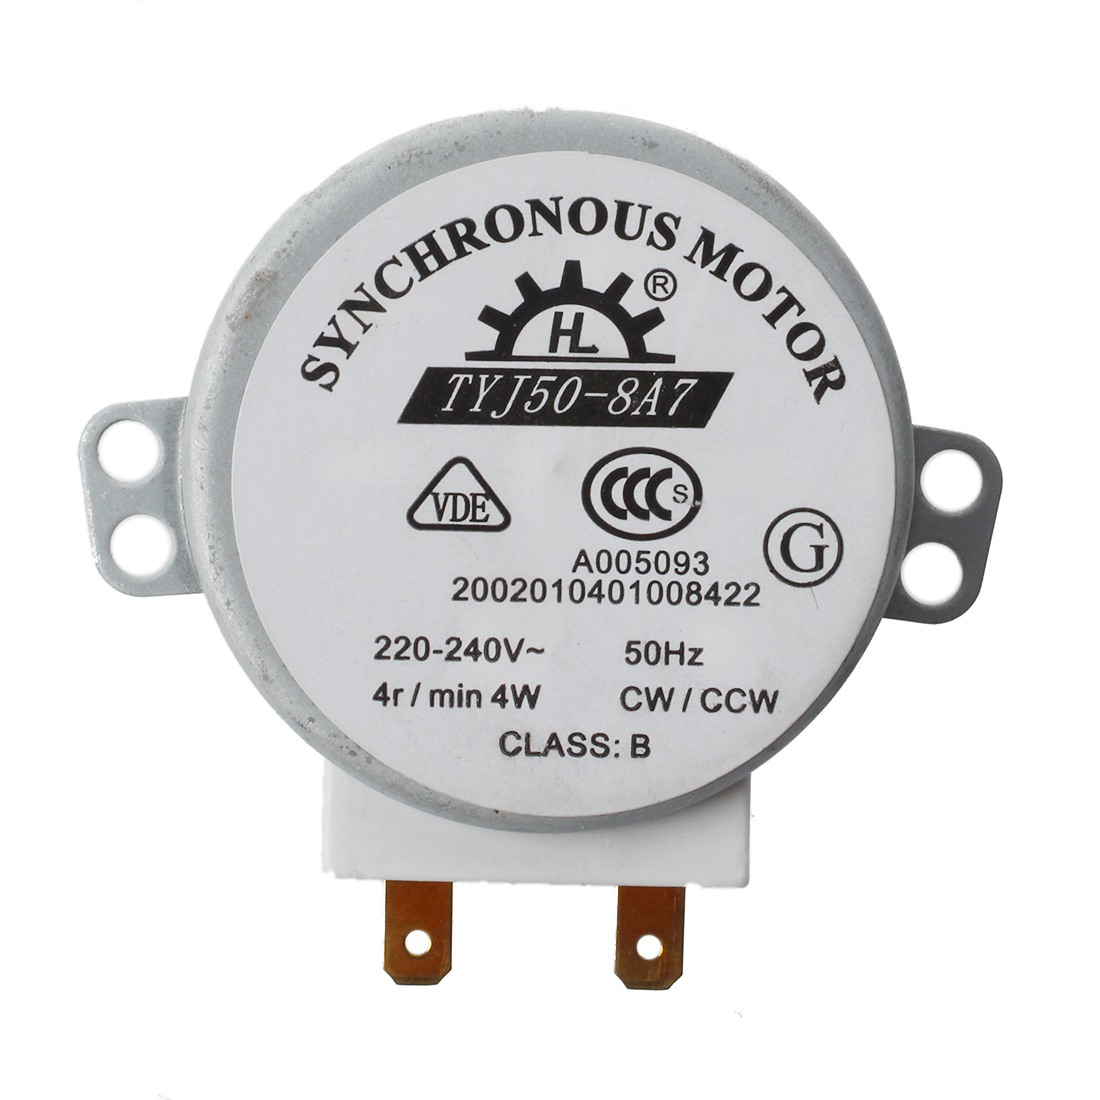 CW / CCW AC 220-240V 4W 4RPM mini synchronous motor for miniwave oven TYJ50-8A7 Microwave oven part стоимость